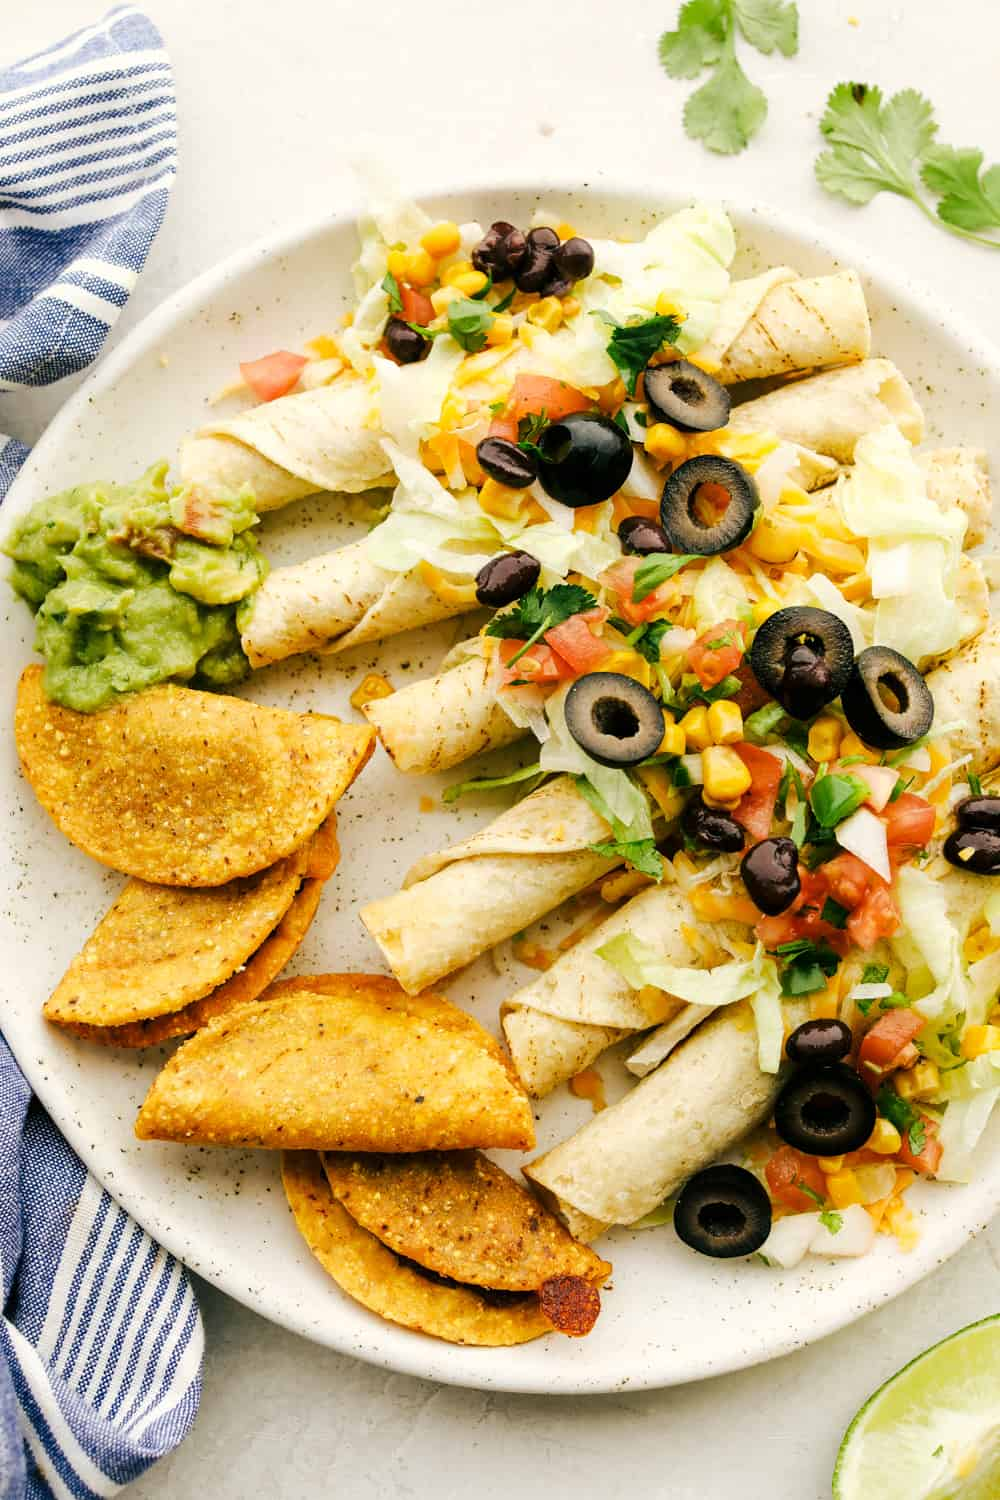 Taquitos smothered with cheese, olives, corn and tomatoes with tacos and guacamole on the side.